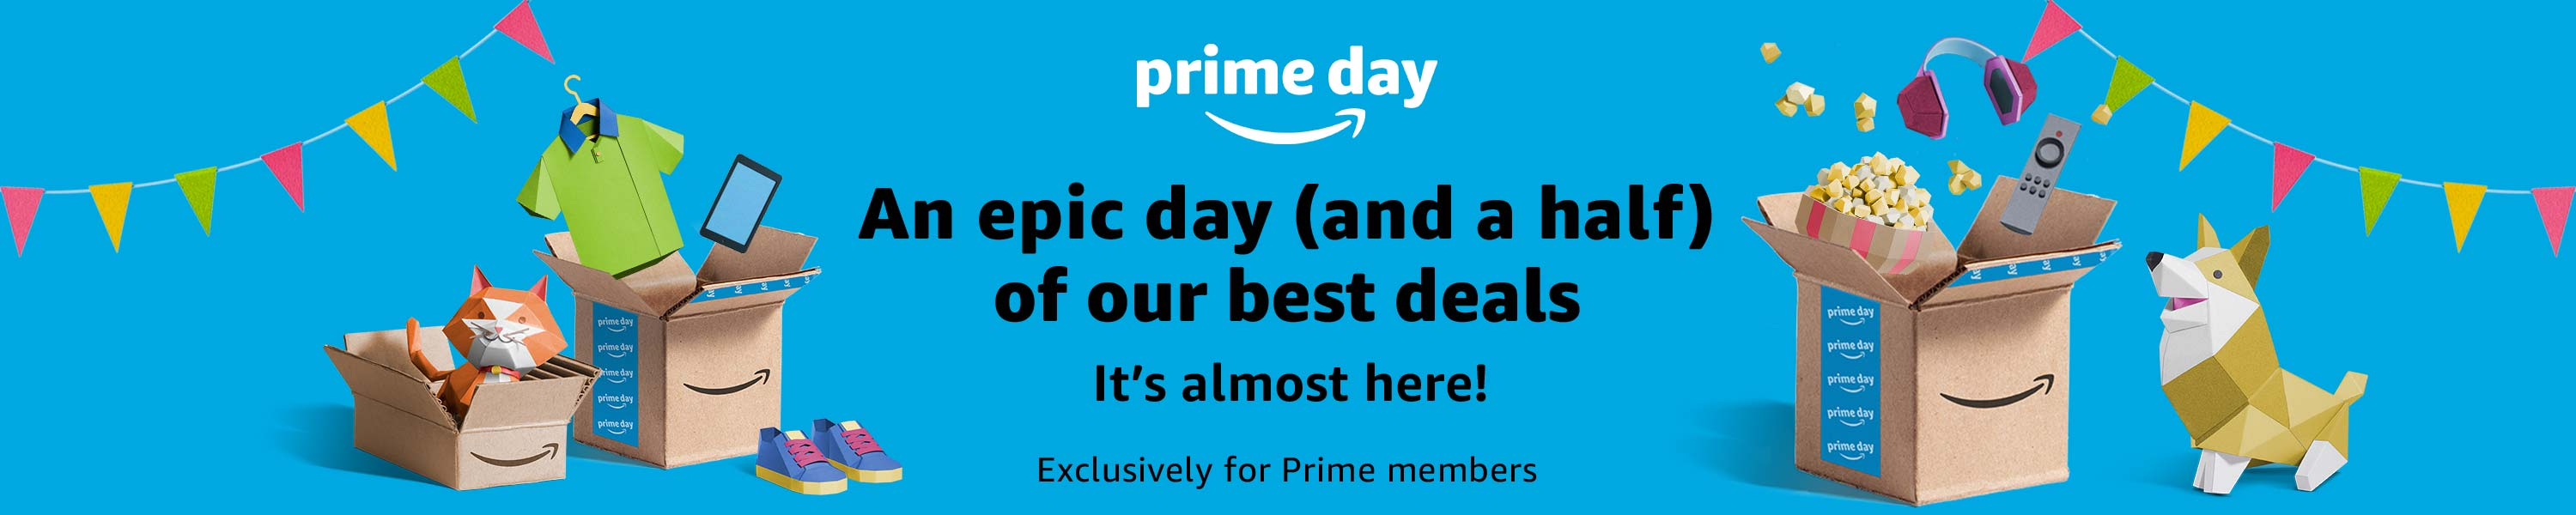 It's almost here! | An epic day (and a half) of our best deals exclusively for Prime members